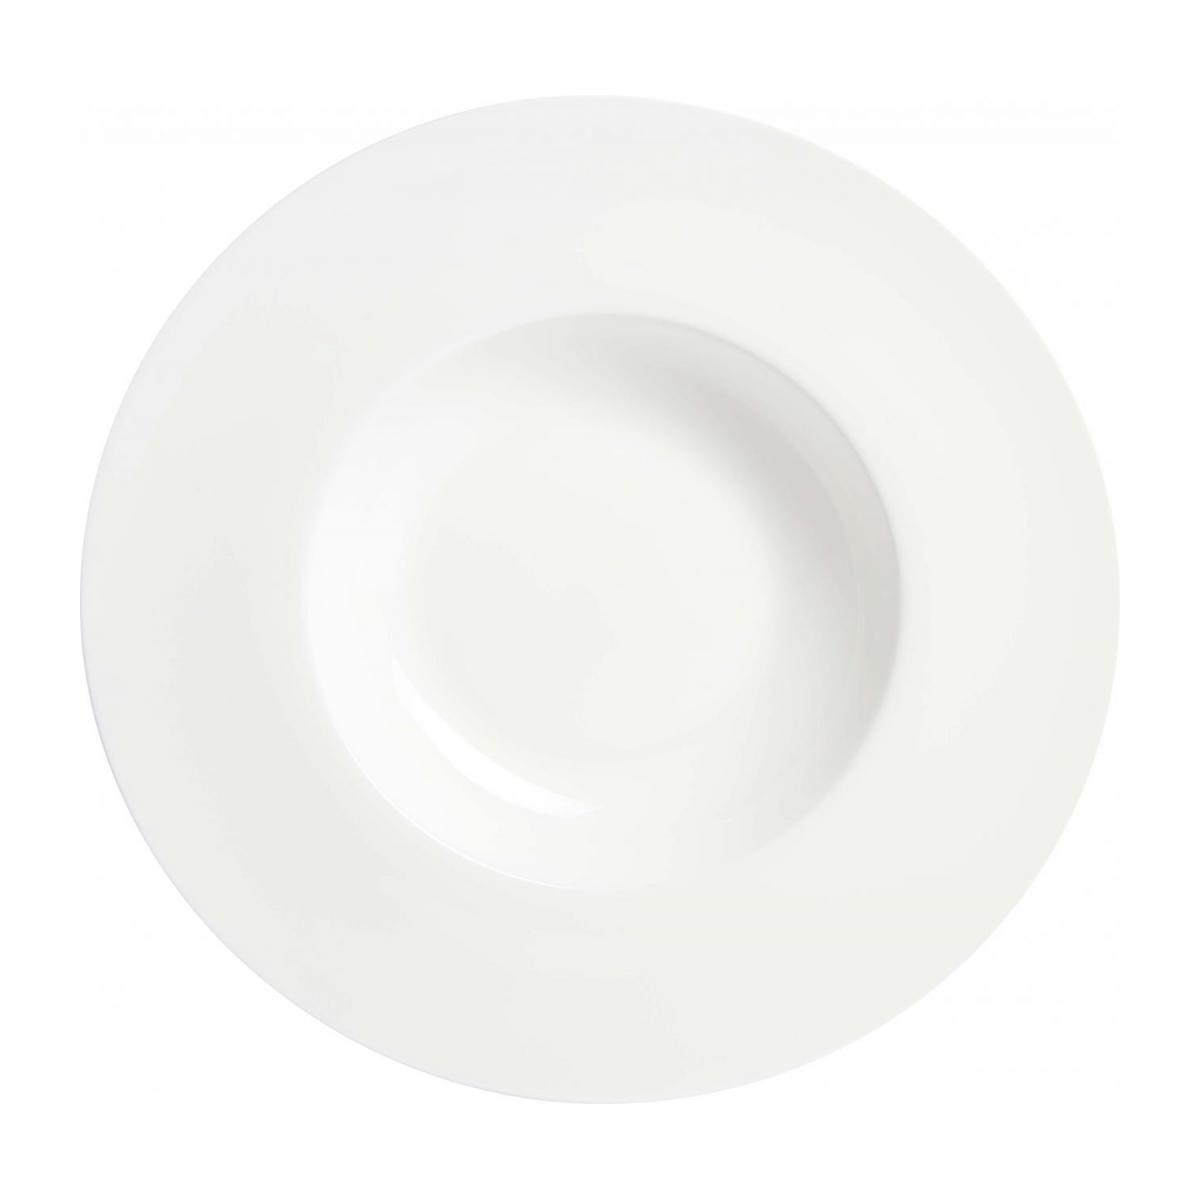 Plate for risotto in porcelain n°1